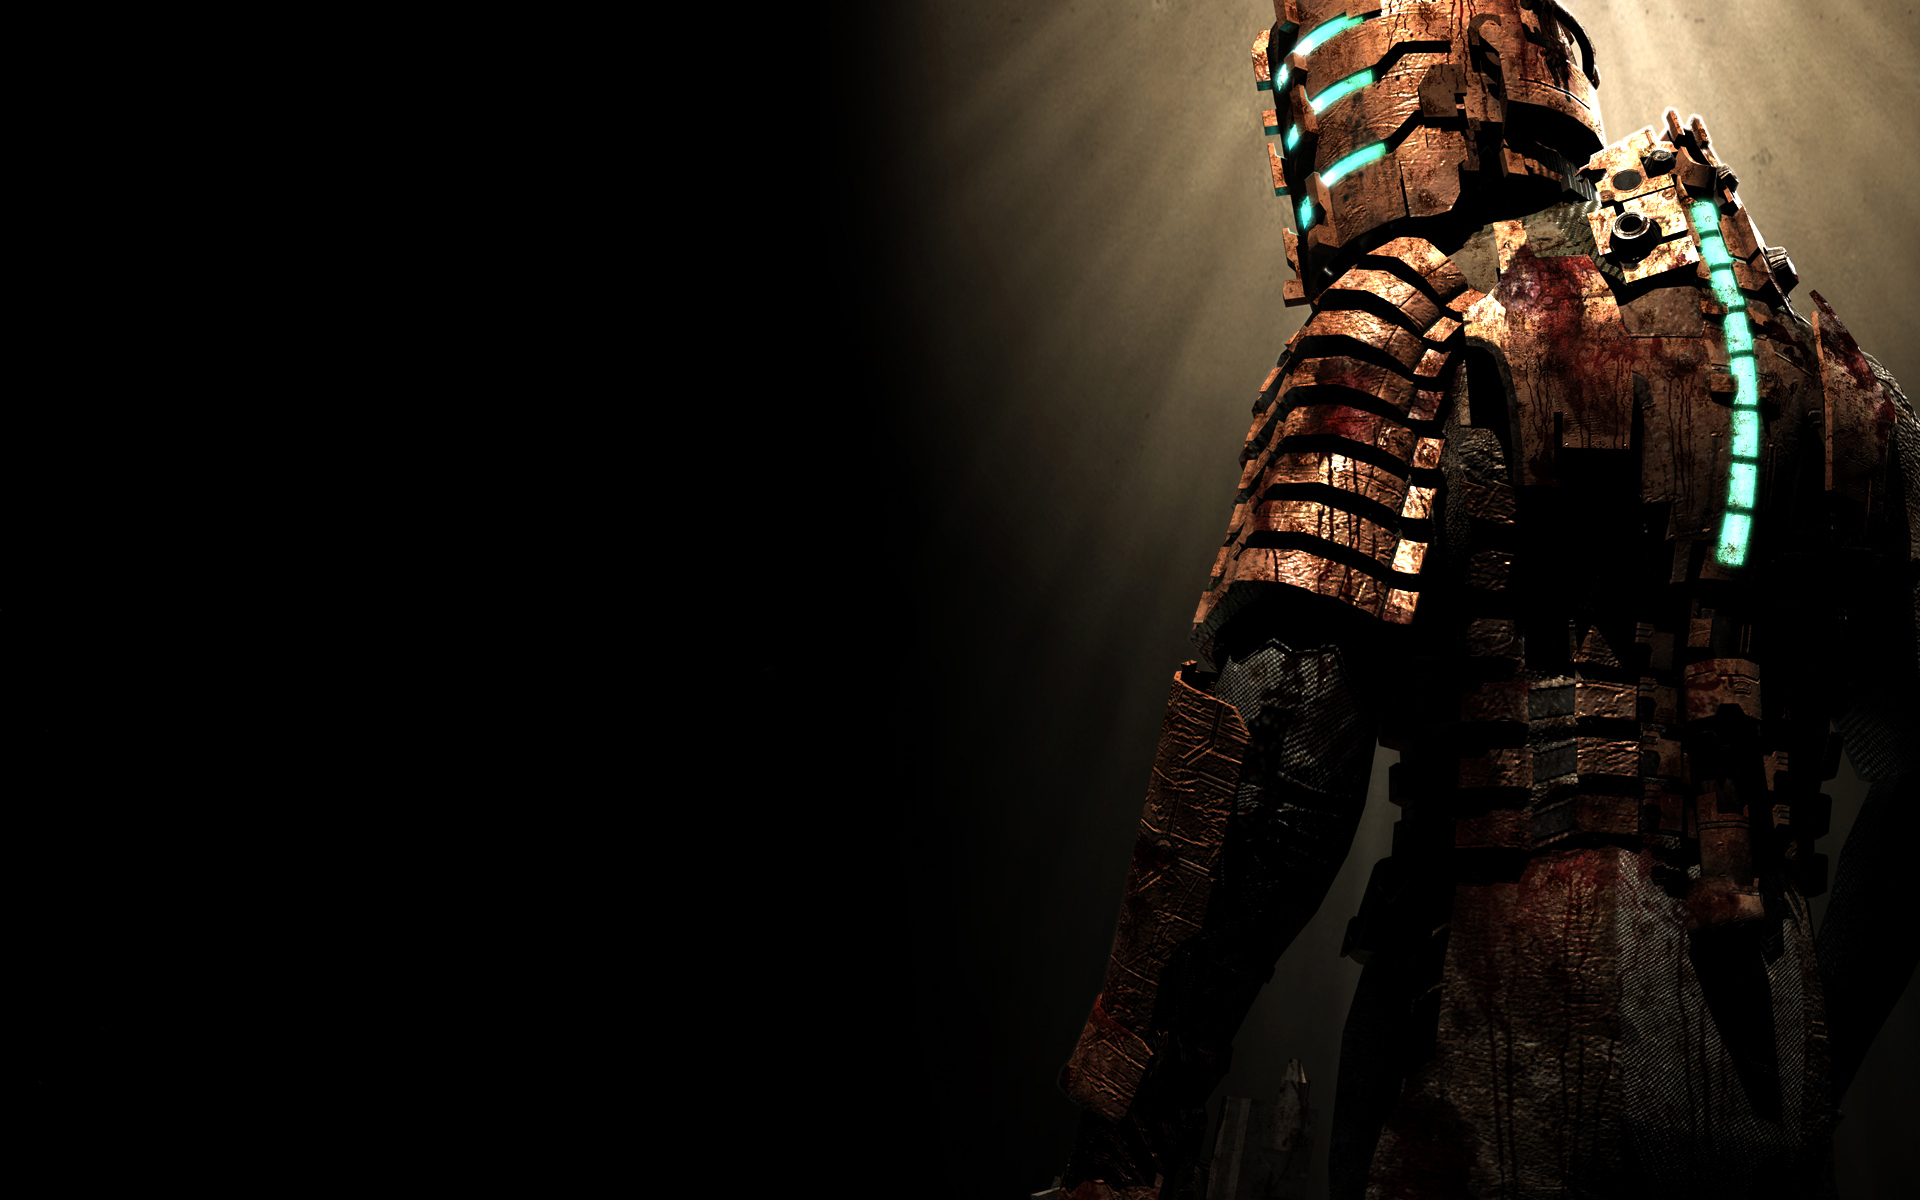 dead_space_wallpaper_hd